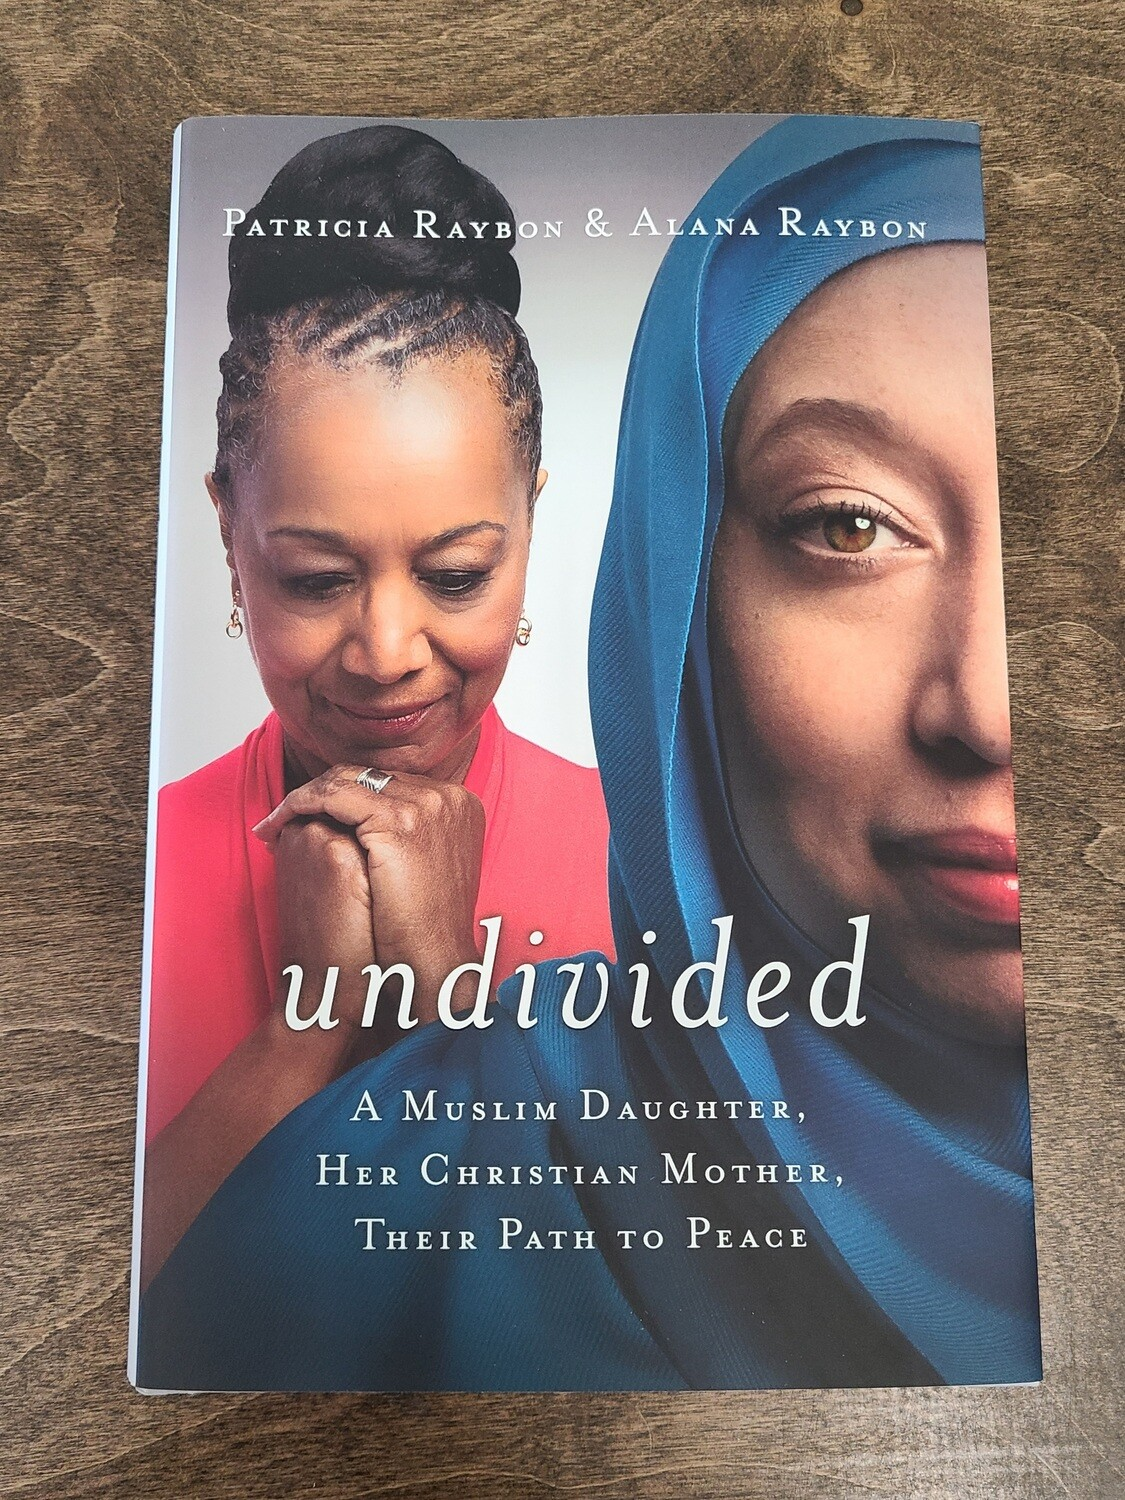 Undivided: A Muslim Daughter, Her Christian Mother, Their Path to Peace by Patricia Raybon and Alana Raybon